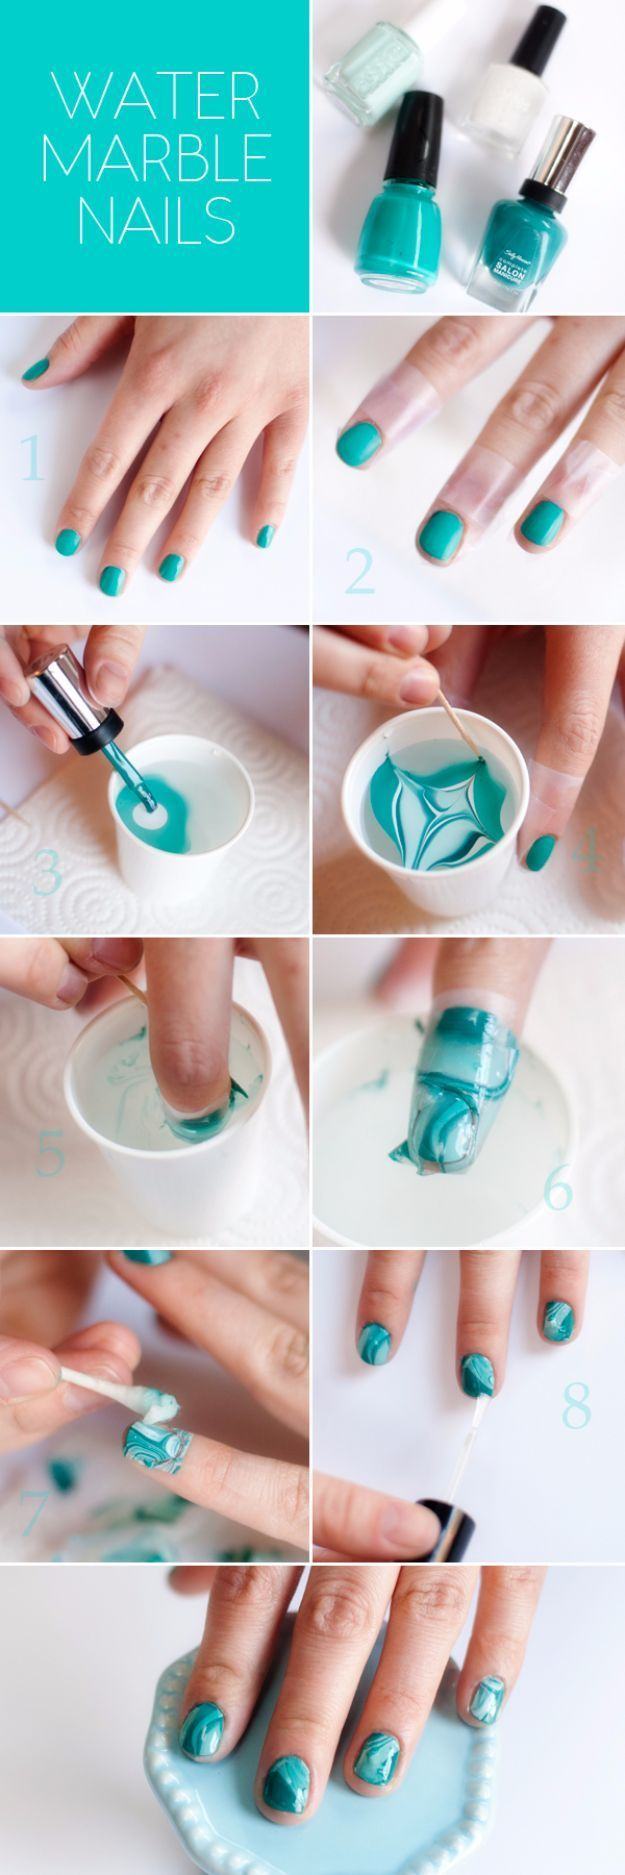 Easy Ways To Paint Nails   Water Marble Nails   Quick Tips And Tricks For  Manicures At Home   Nail Designs And Art Ideas For Simple DIY Pedicures Au2026